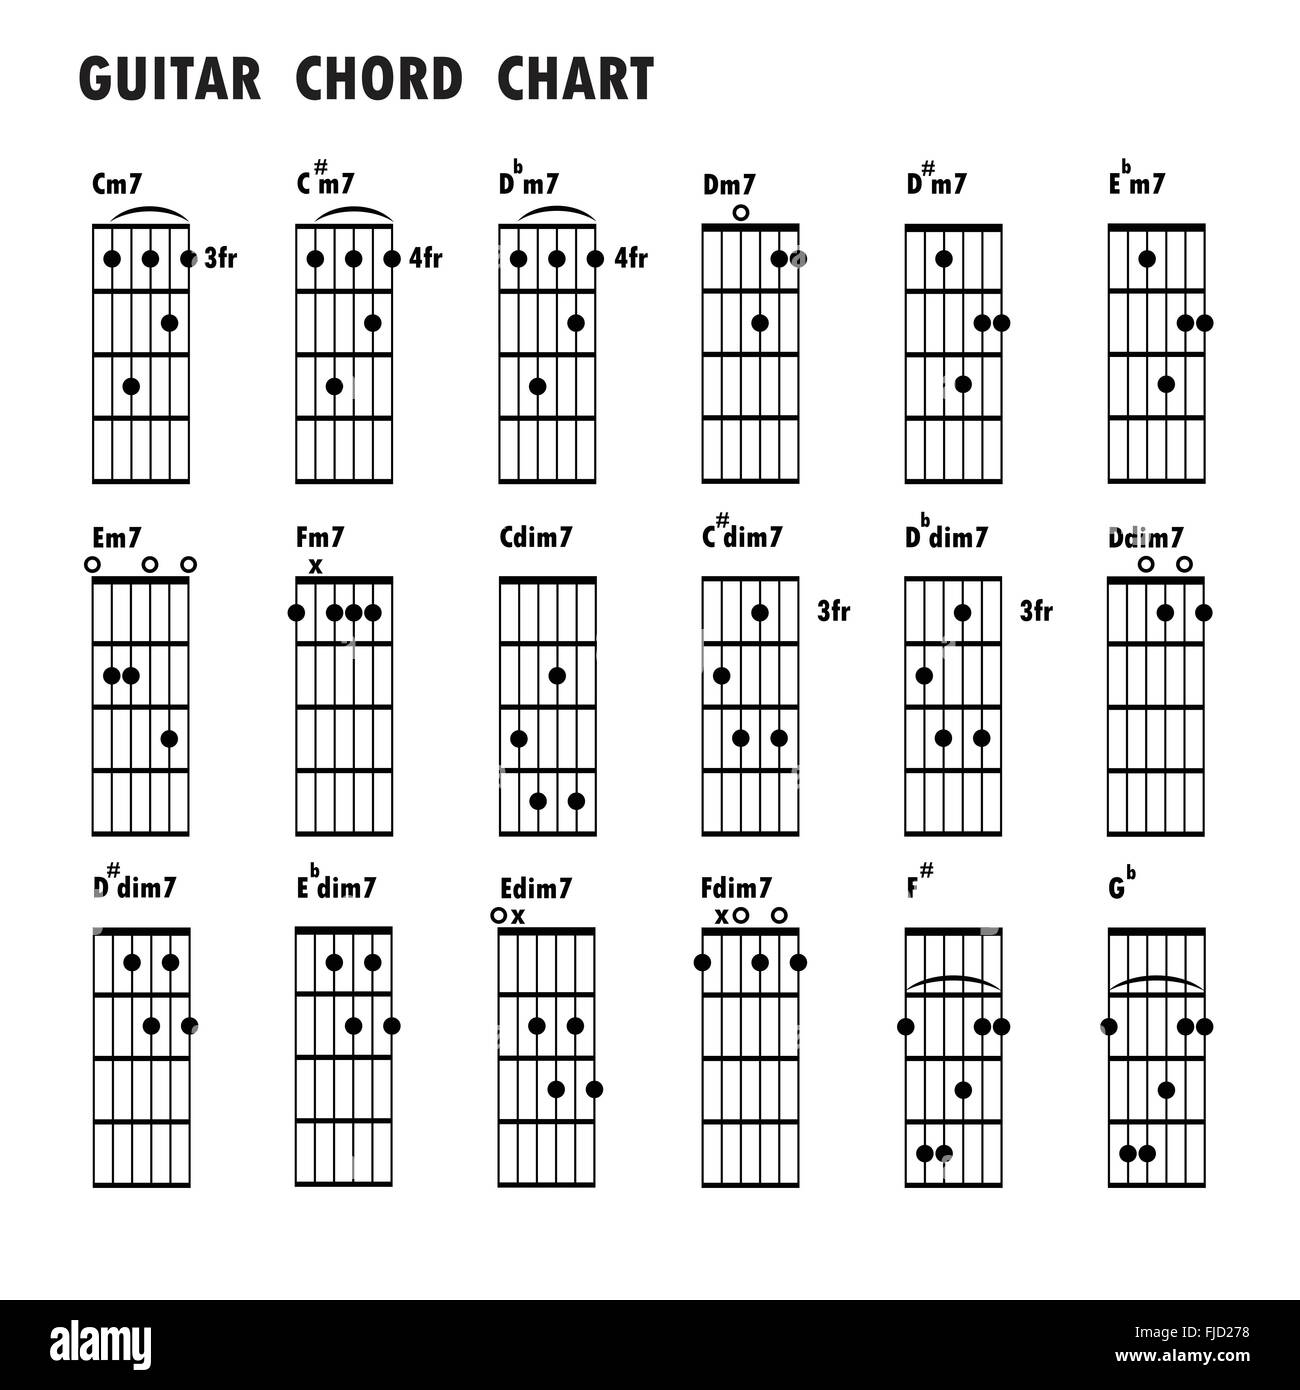 how to make ac chord on guitar